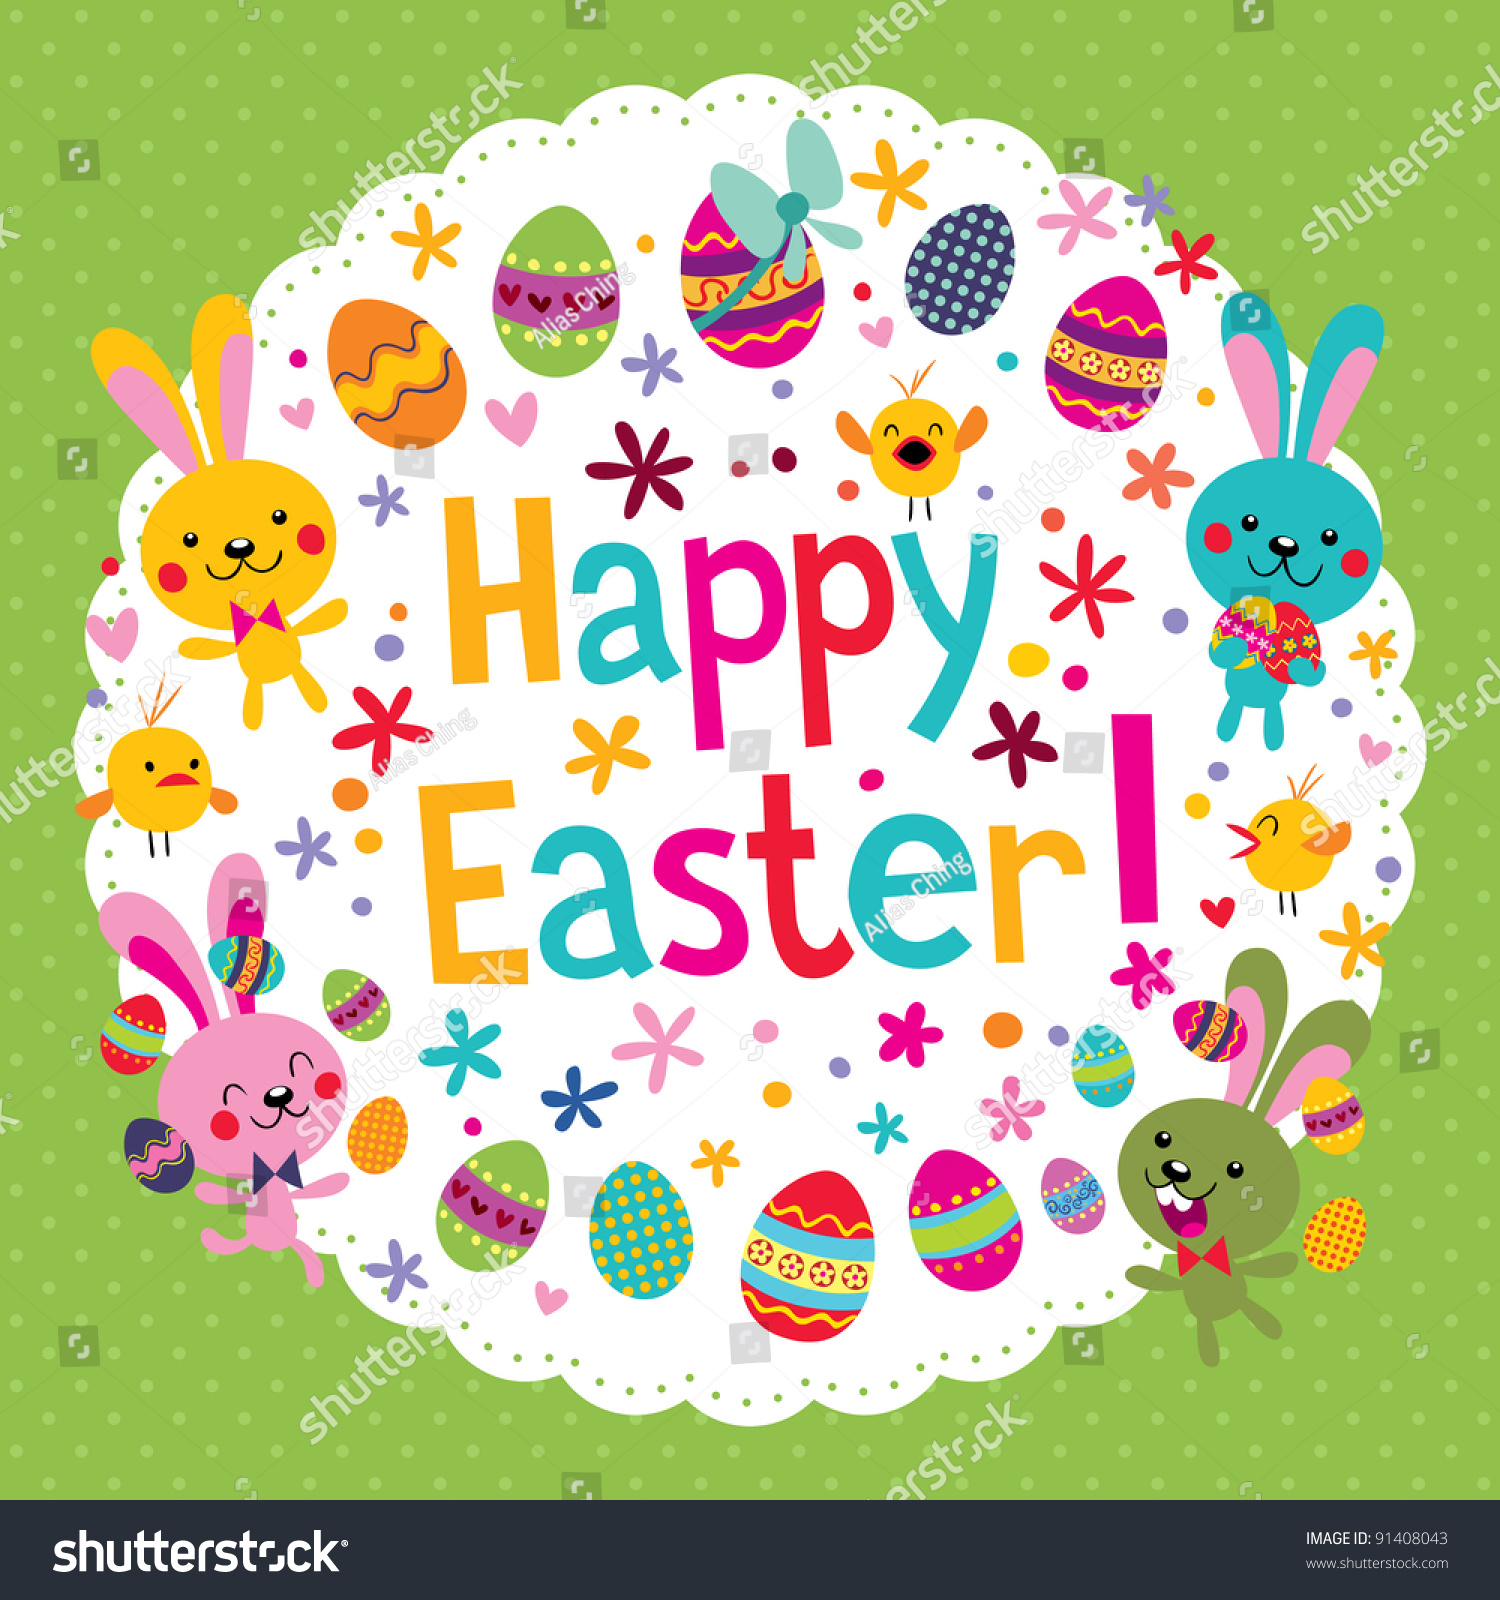 Cute Happy Easter Card Vector 91408043 Shutterstock – Happy Easter Card